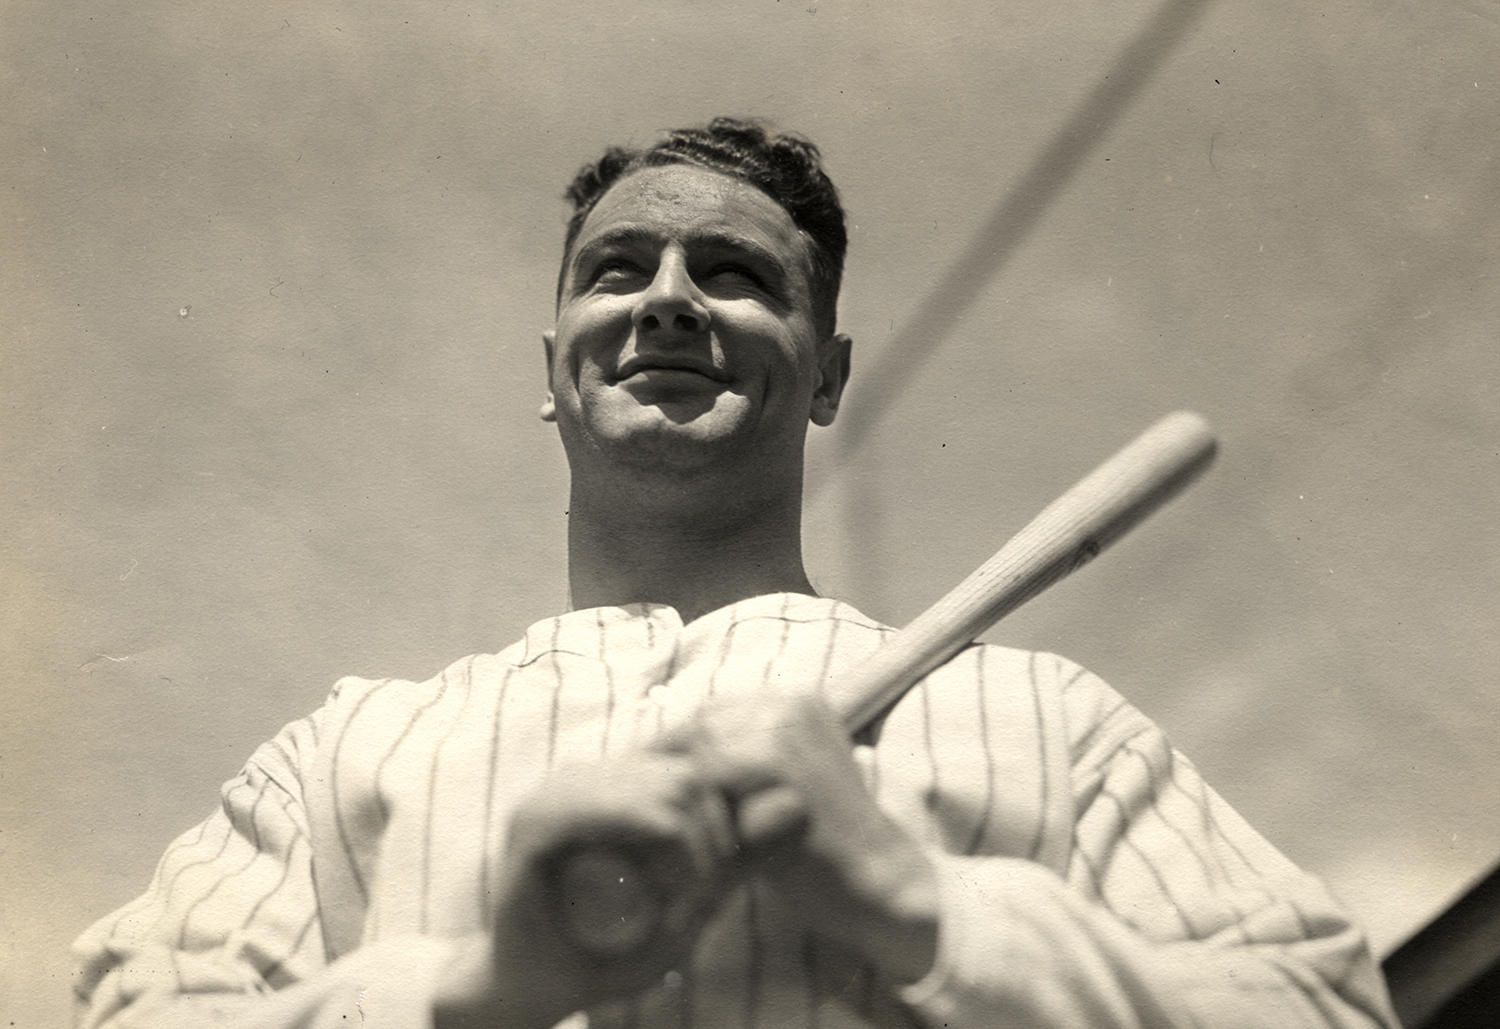 Lou Gehrig played 17 seasons for the New York Yankees, winning seven pennants and six World Series titles before his retirement in 1939. (National Baseball Hall of Fame and Museum)